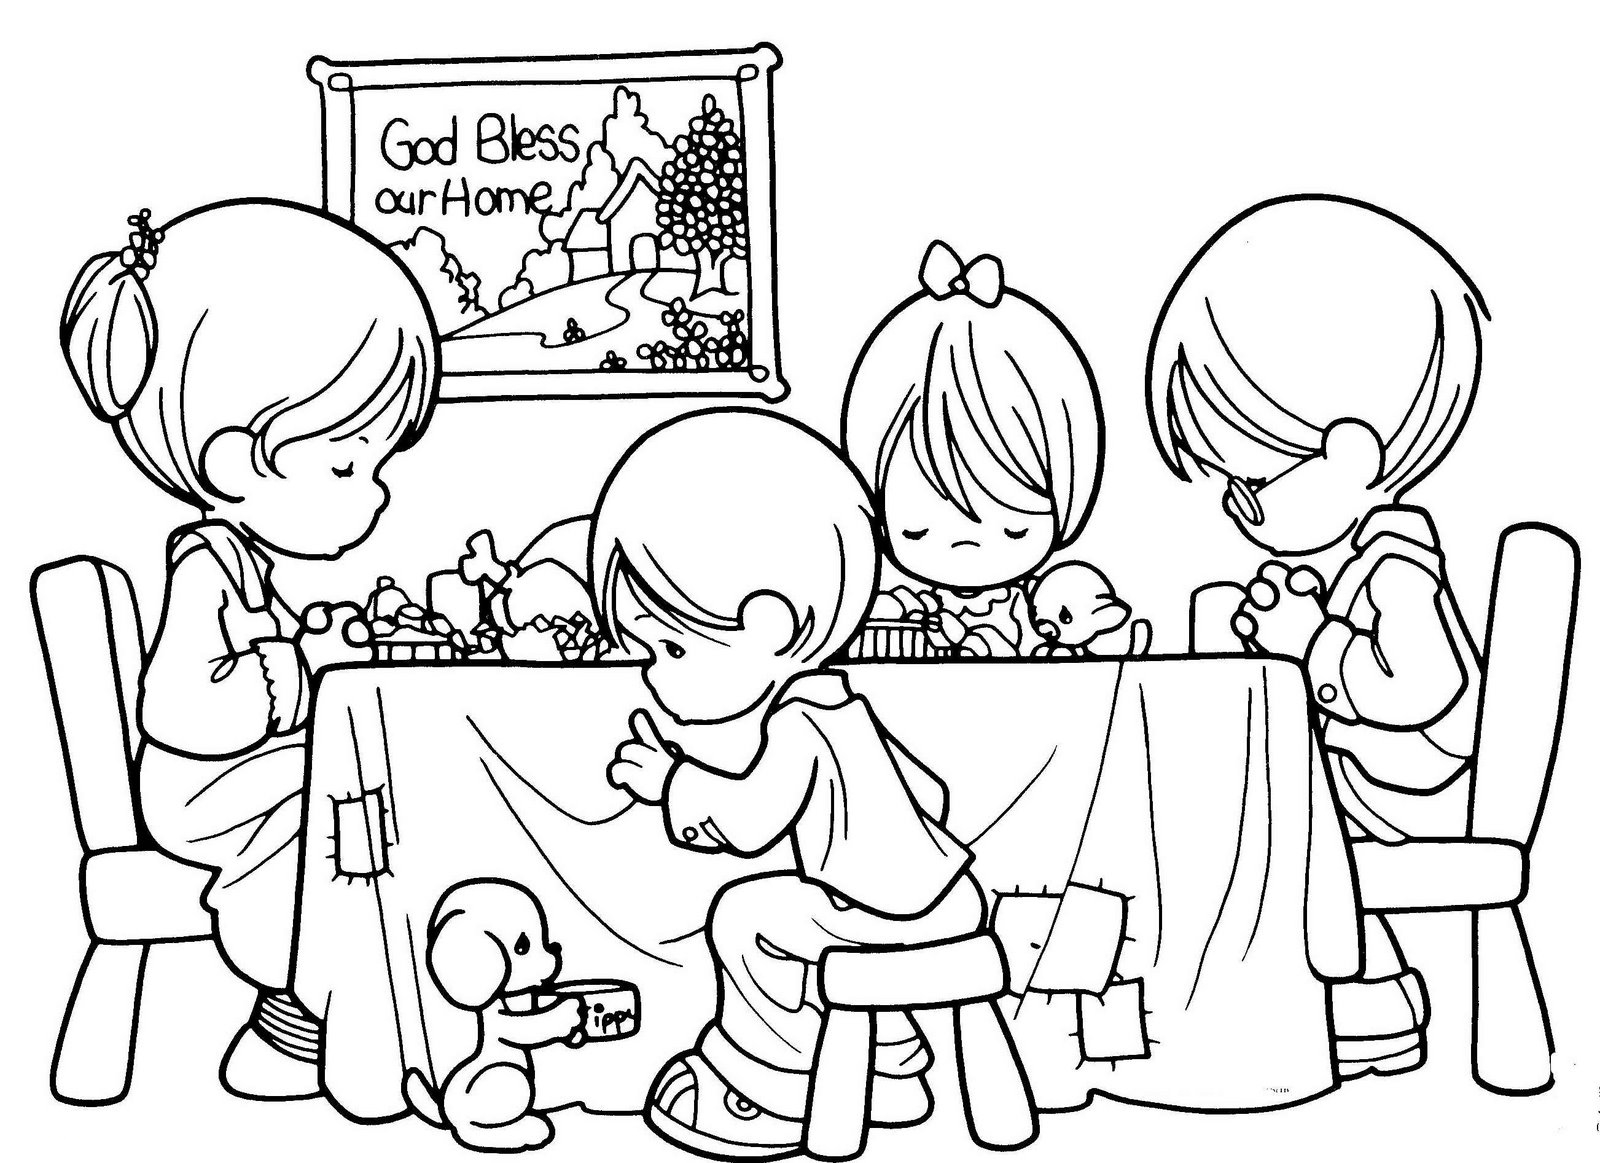 christian child coloring pages free - photo#2